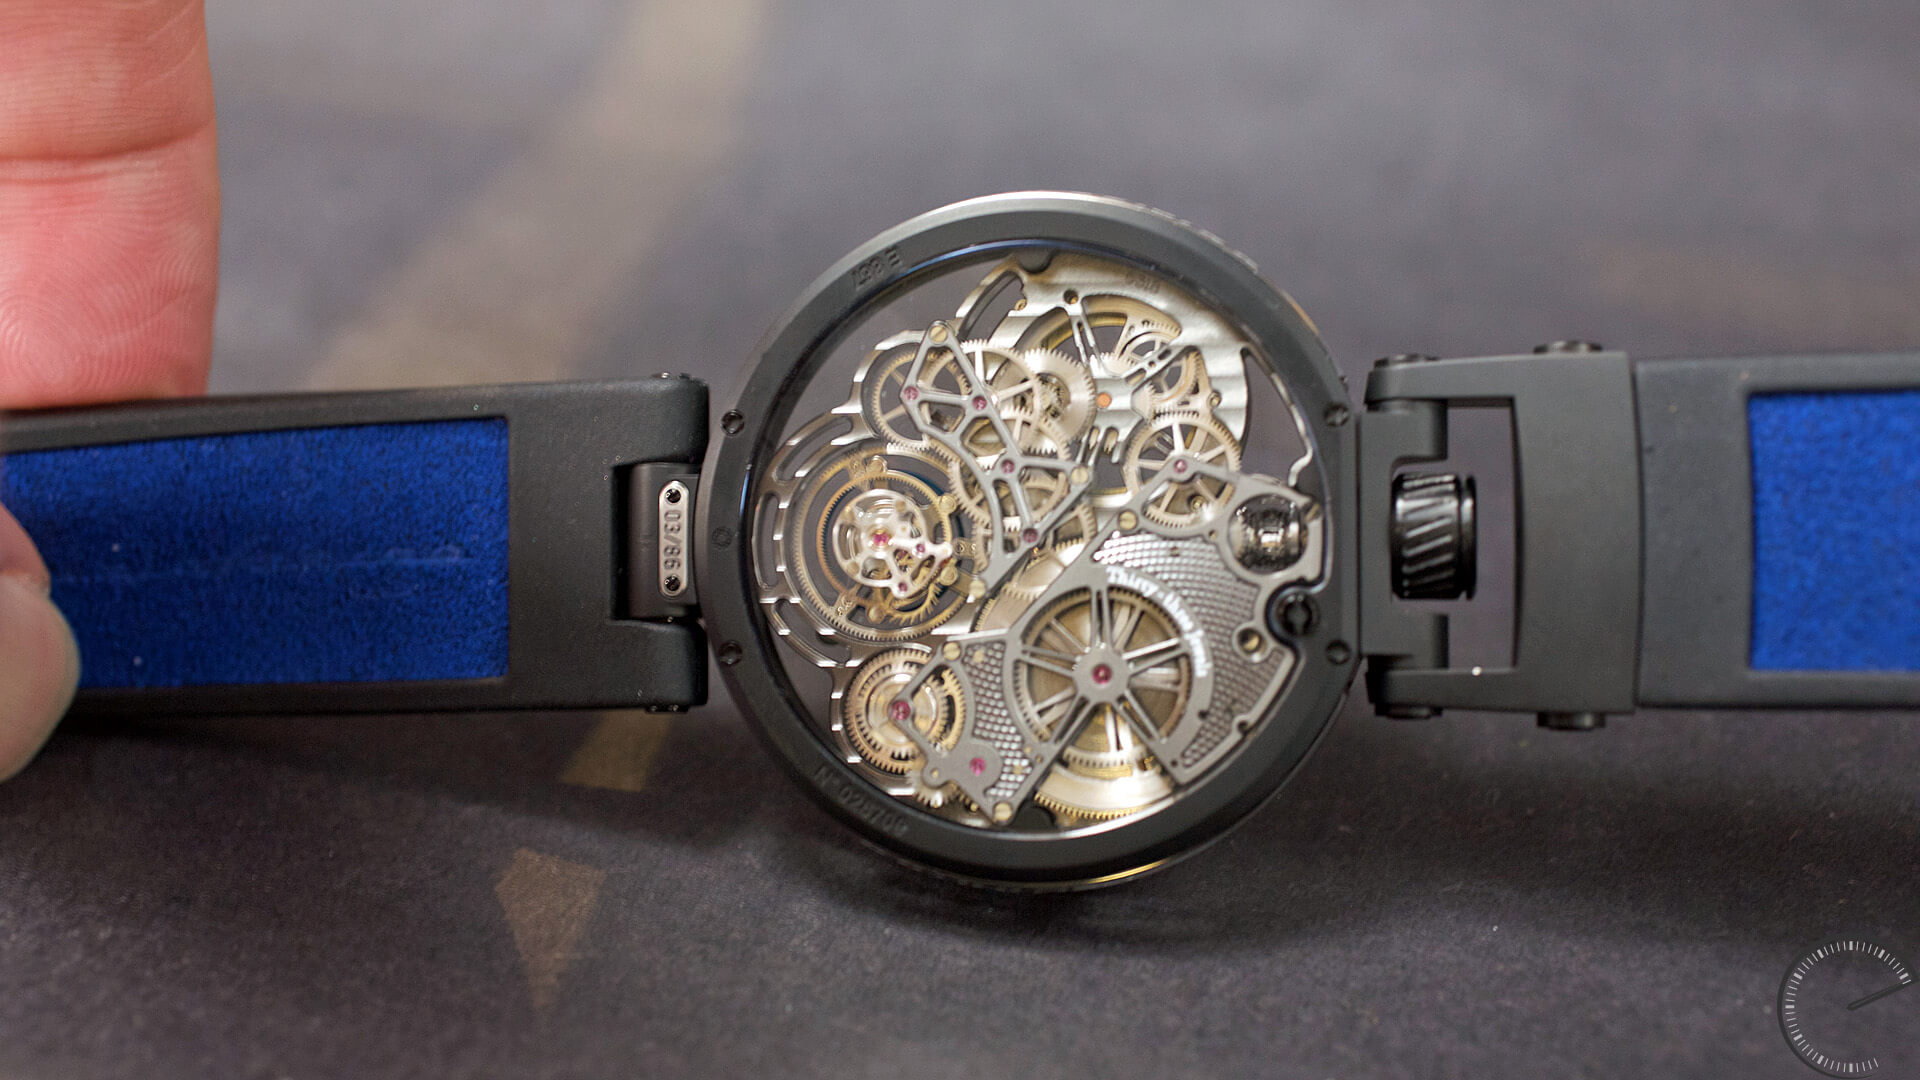 Bovet_Flying_Tourbillon_Ottanta_Sei_Strap - ESCAPEMENT magazine - horology by Angus Davies